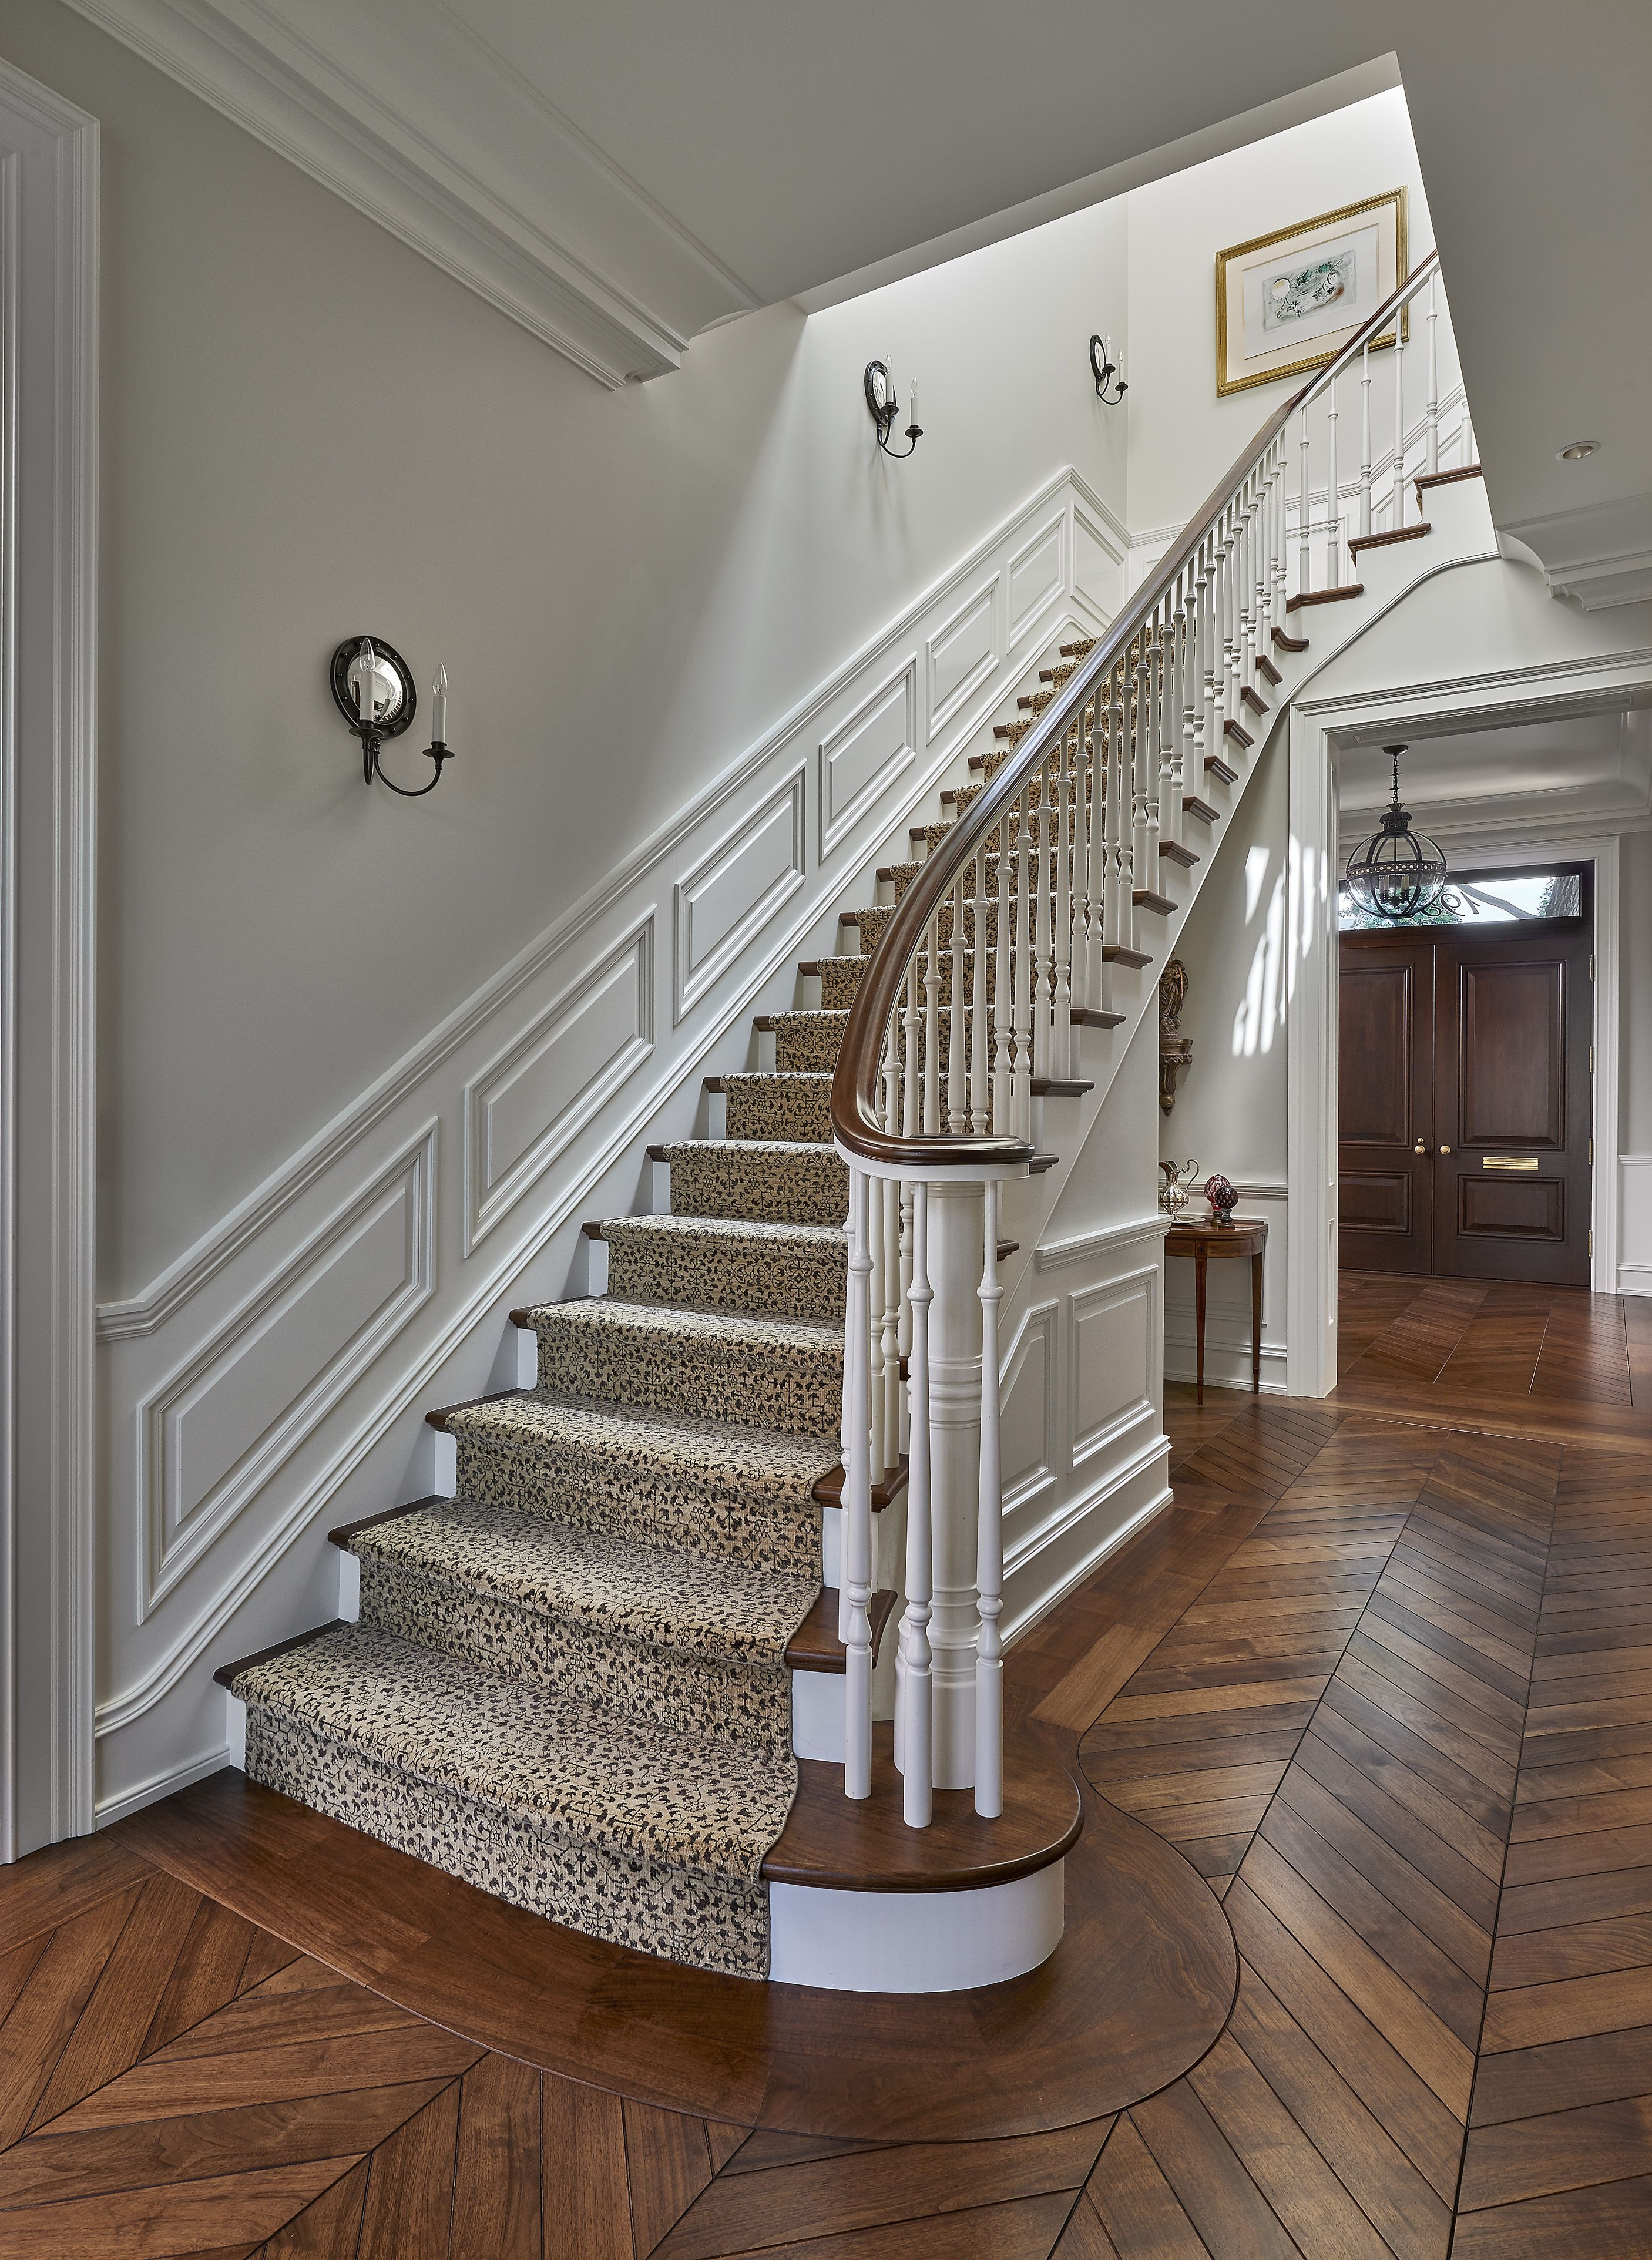 25 Stunning Carpeted Staircase Ideas Most Beautiful Staircase | Rustic Carpet Stair Treads | Sisal Carpet | Titanium Heather | Naturalarearugs Rustic | Carpet Runners | Farrel Moroccan